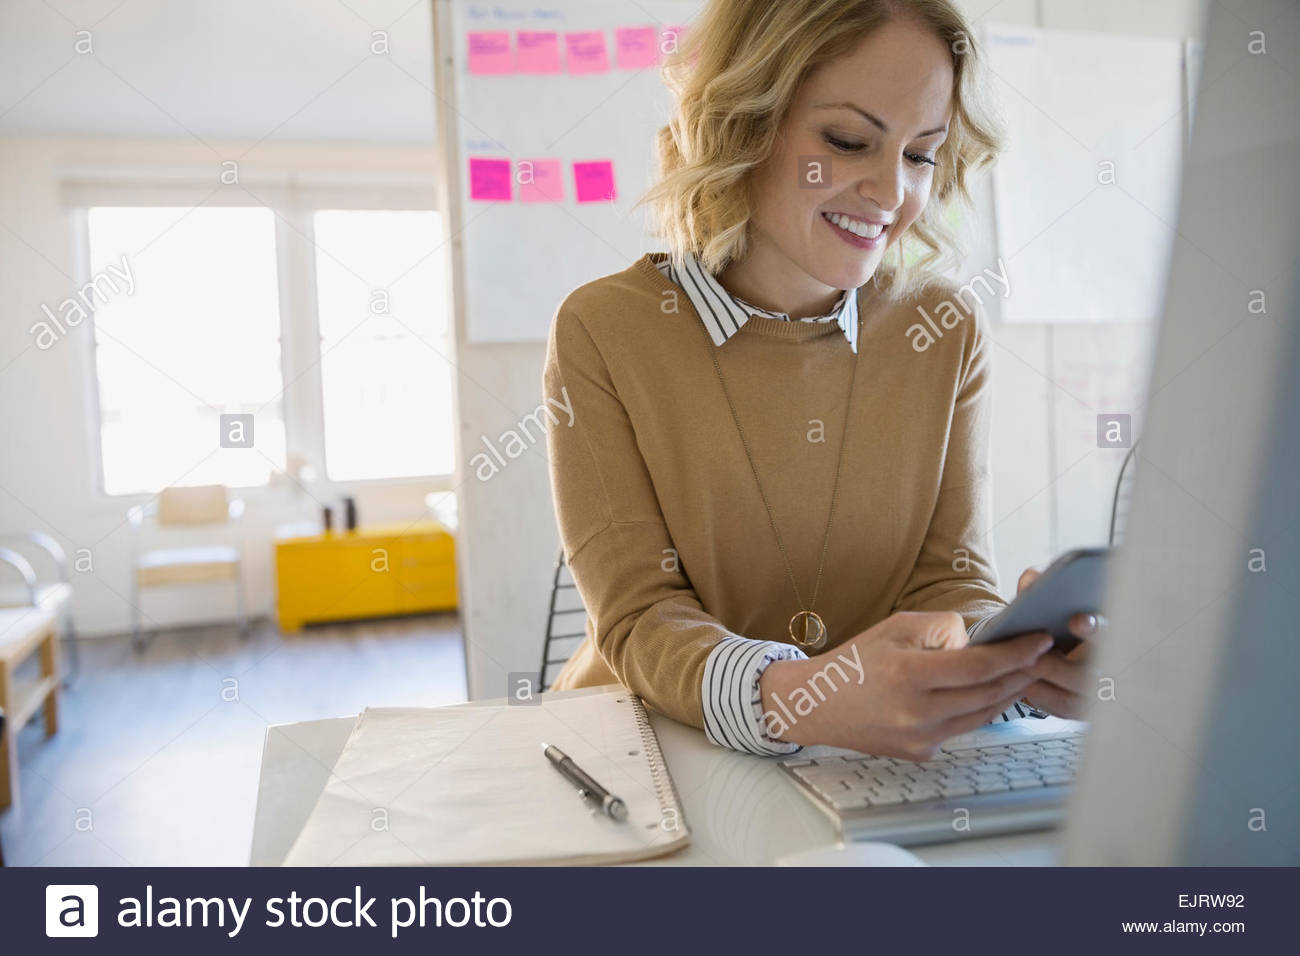 Smiling businesswoman text messaging dans la salle de conférence Photo Stock